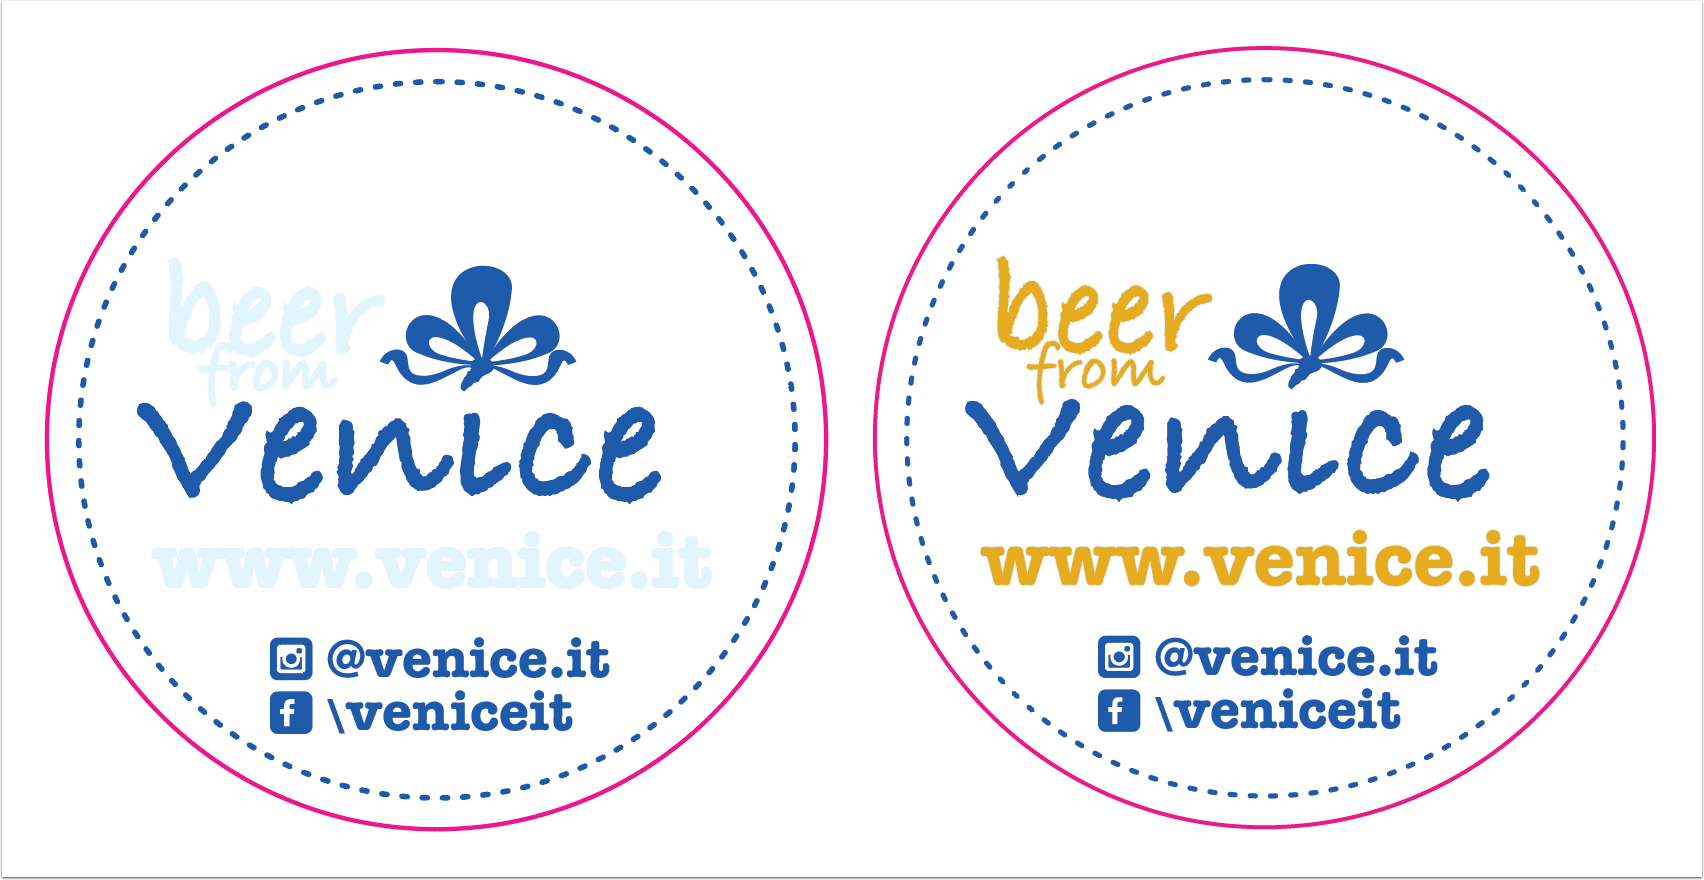 1379-Beer_from_venice.pdf* @ 200% (CMYK/GPU Preview)